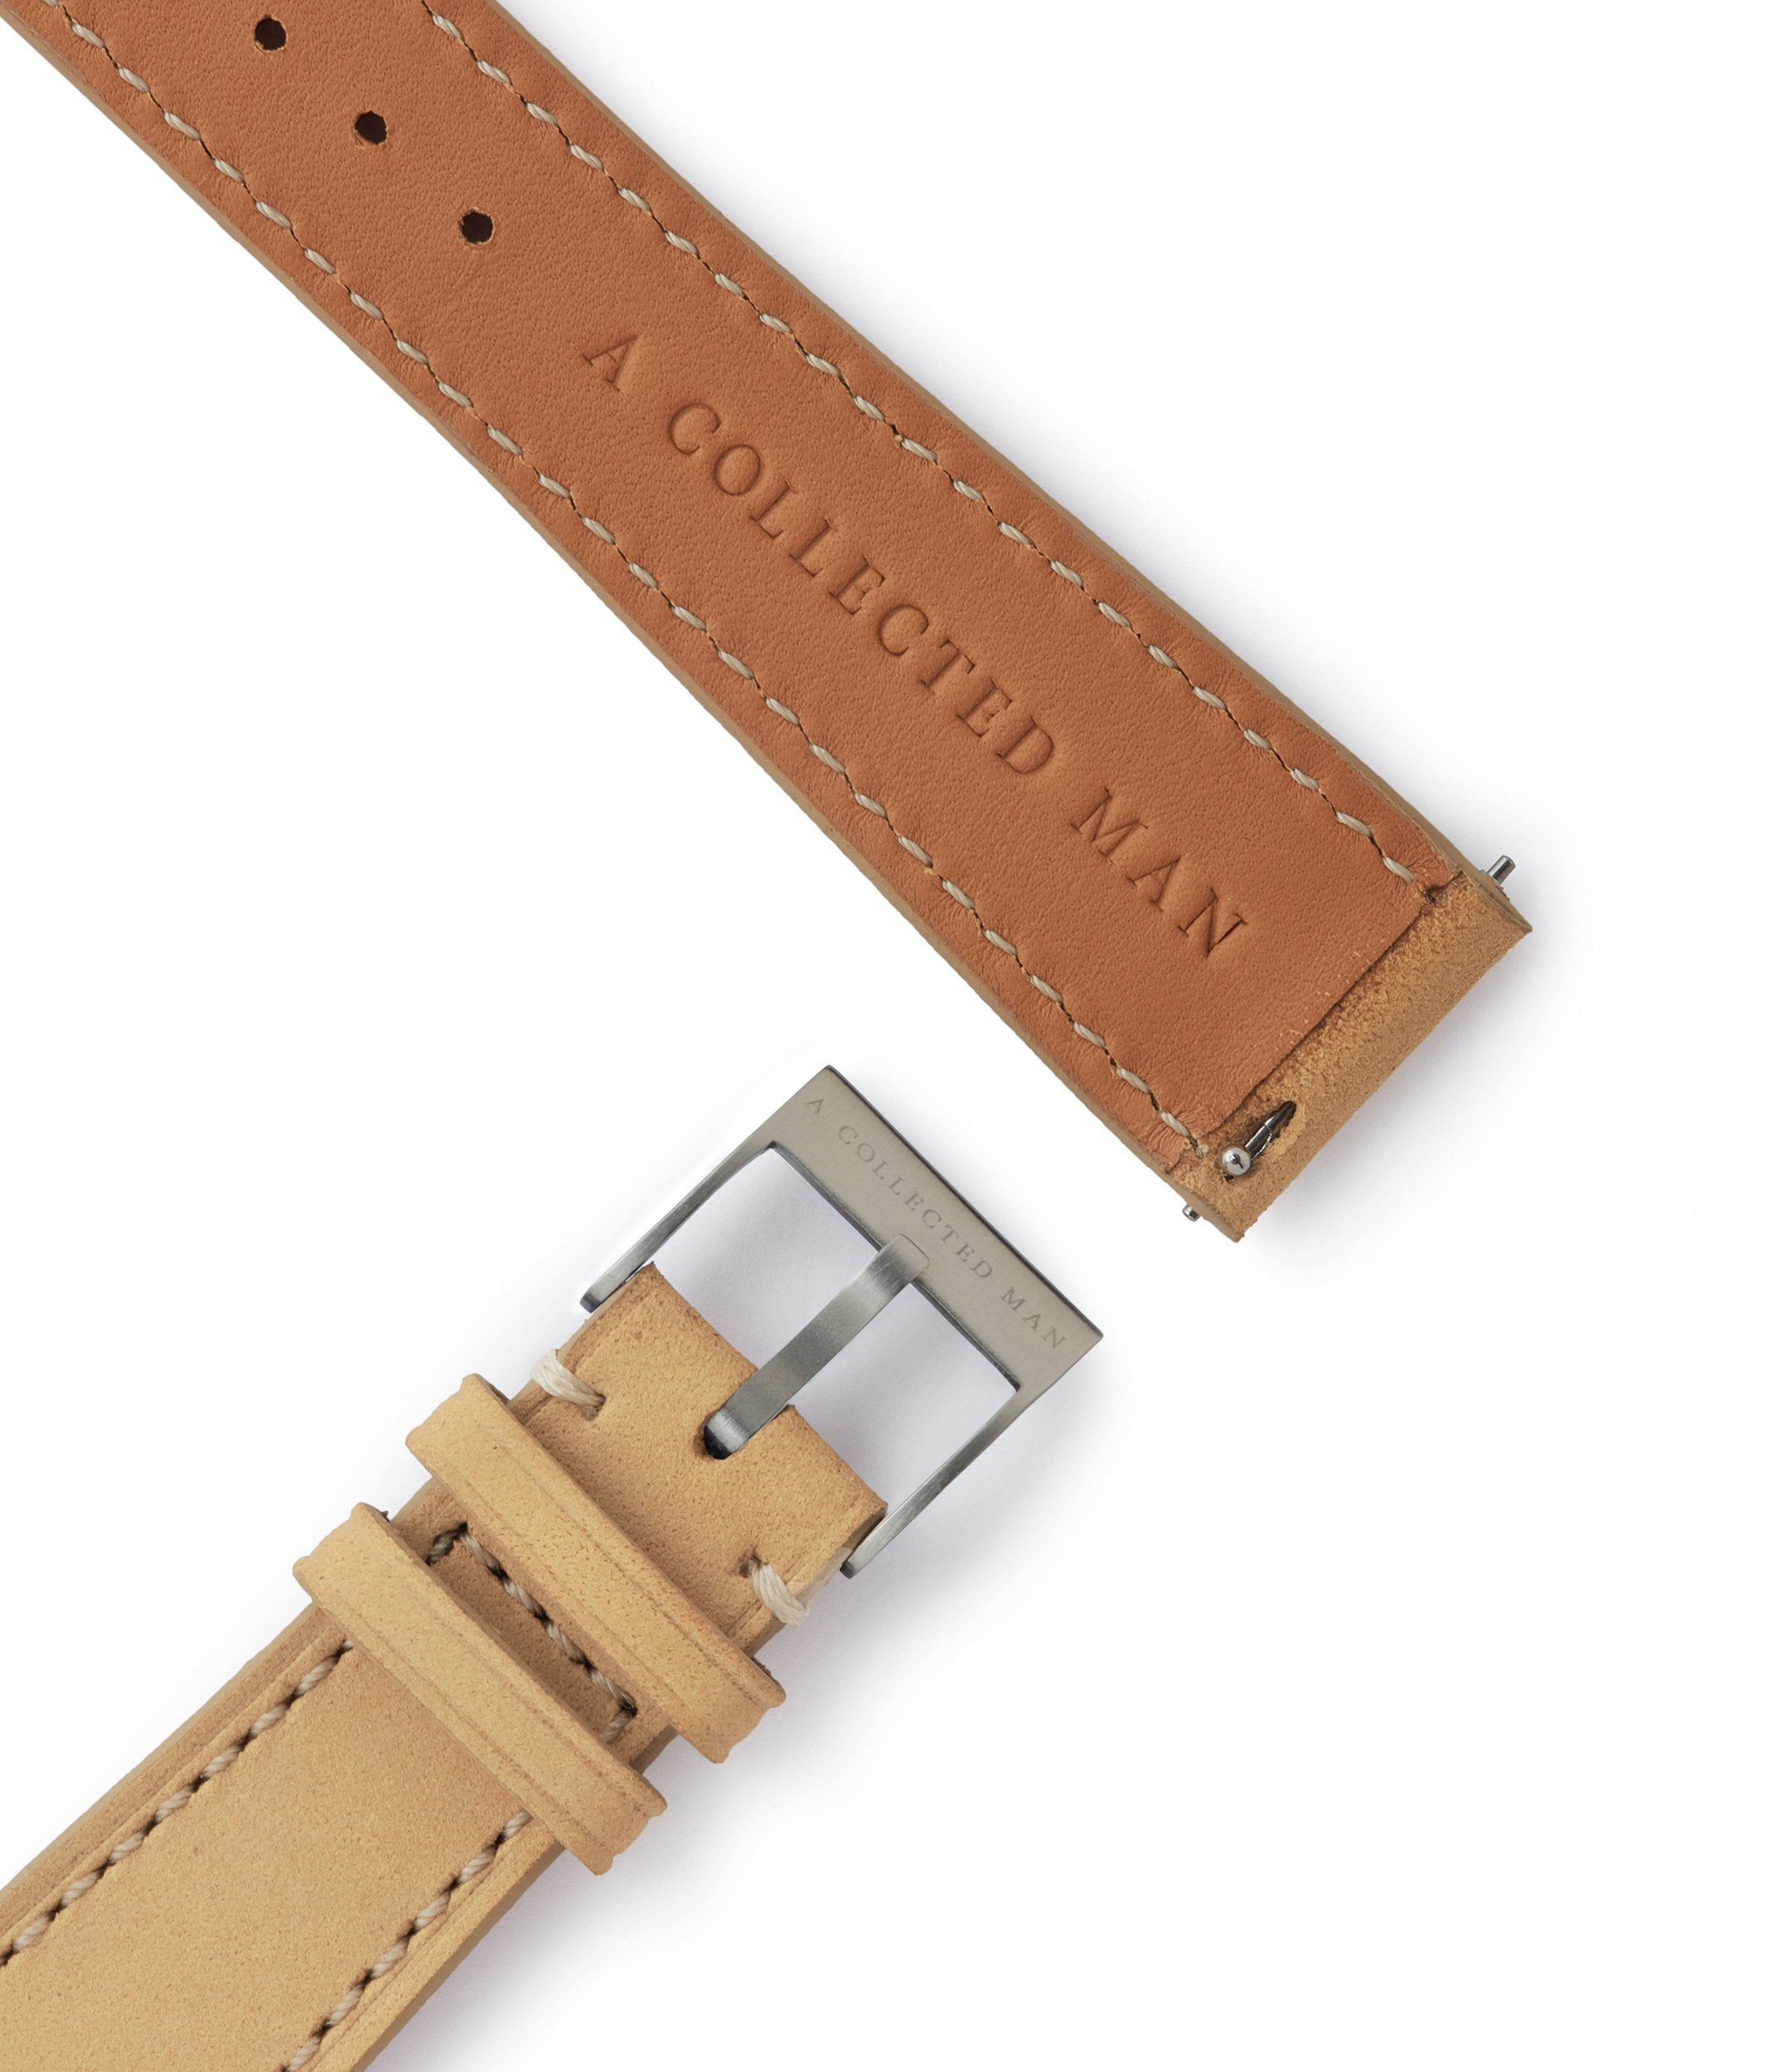 light brown leather nubuck watch strap quick-release springbars Capri Molequin for sale order online at A Collected Man London